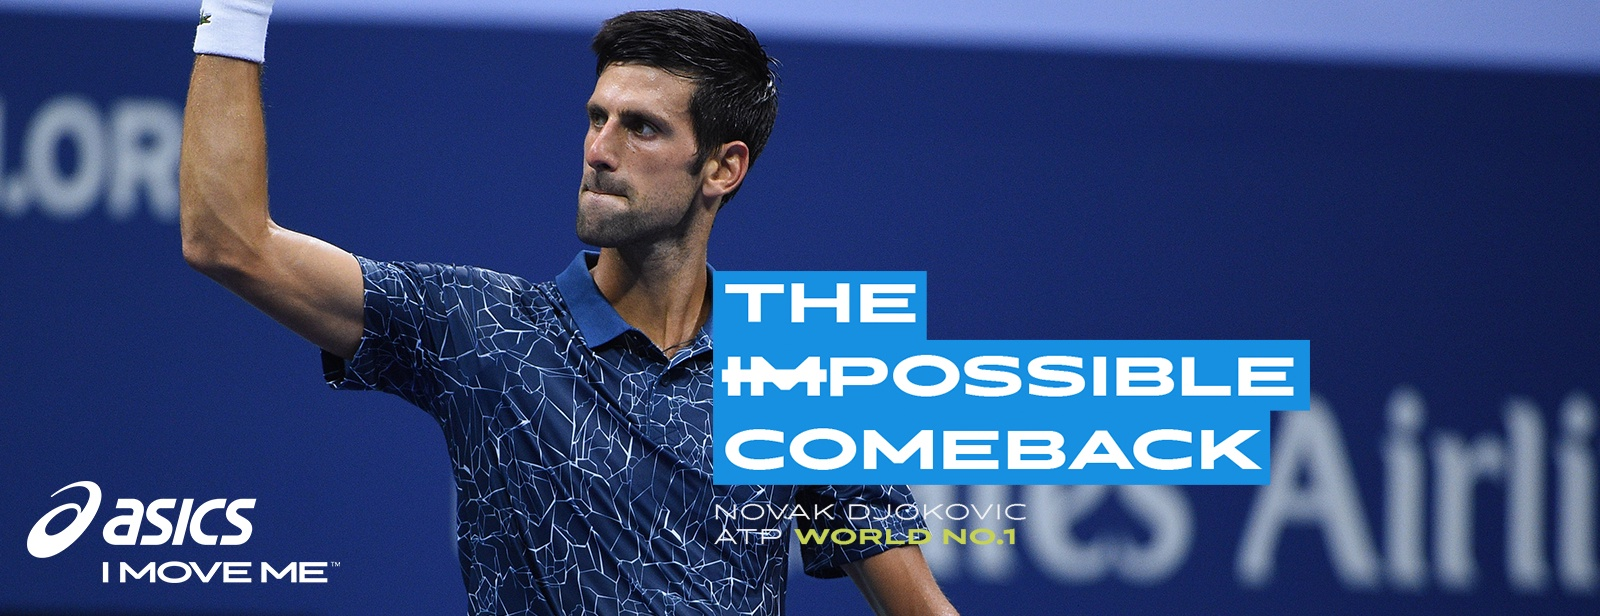 "Novak Djokovic celebrating a victory, with ""The Impossible Comeback"" overlaid text"